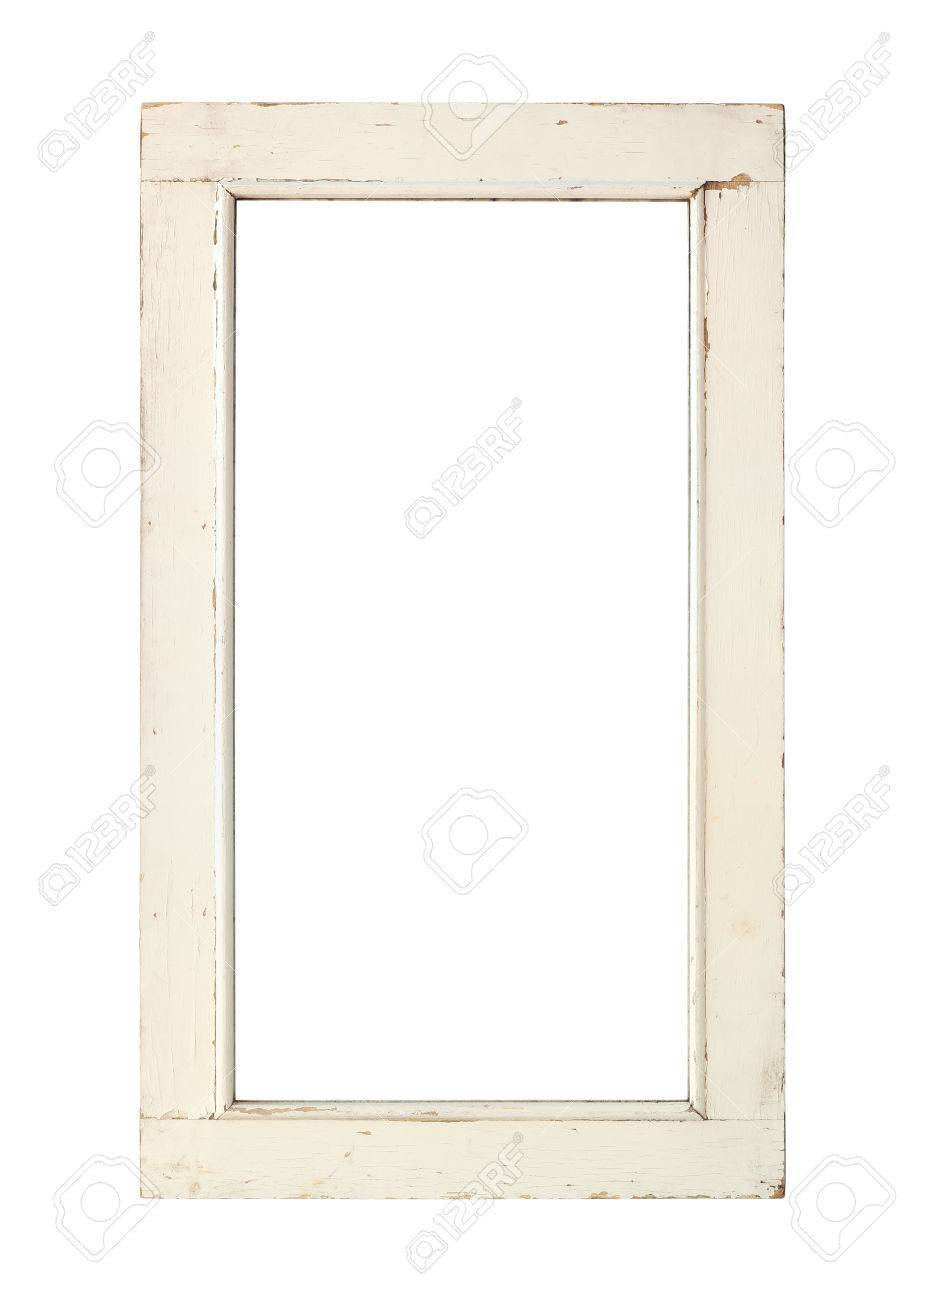 Old Window Frame With Clipping Path Stock Photo, Picture And Royalty ...